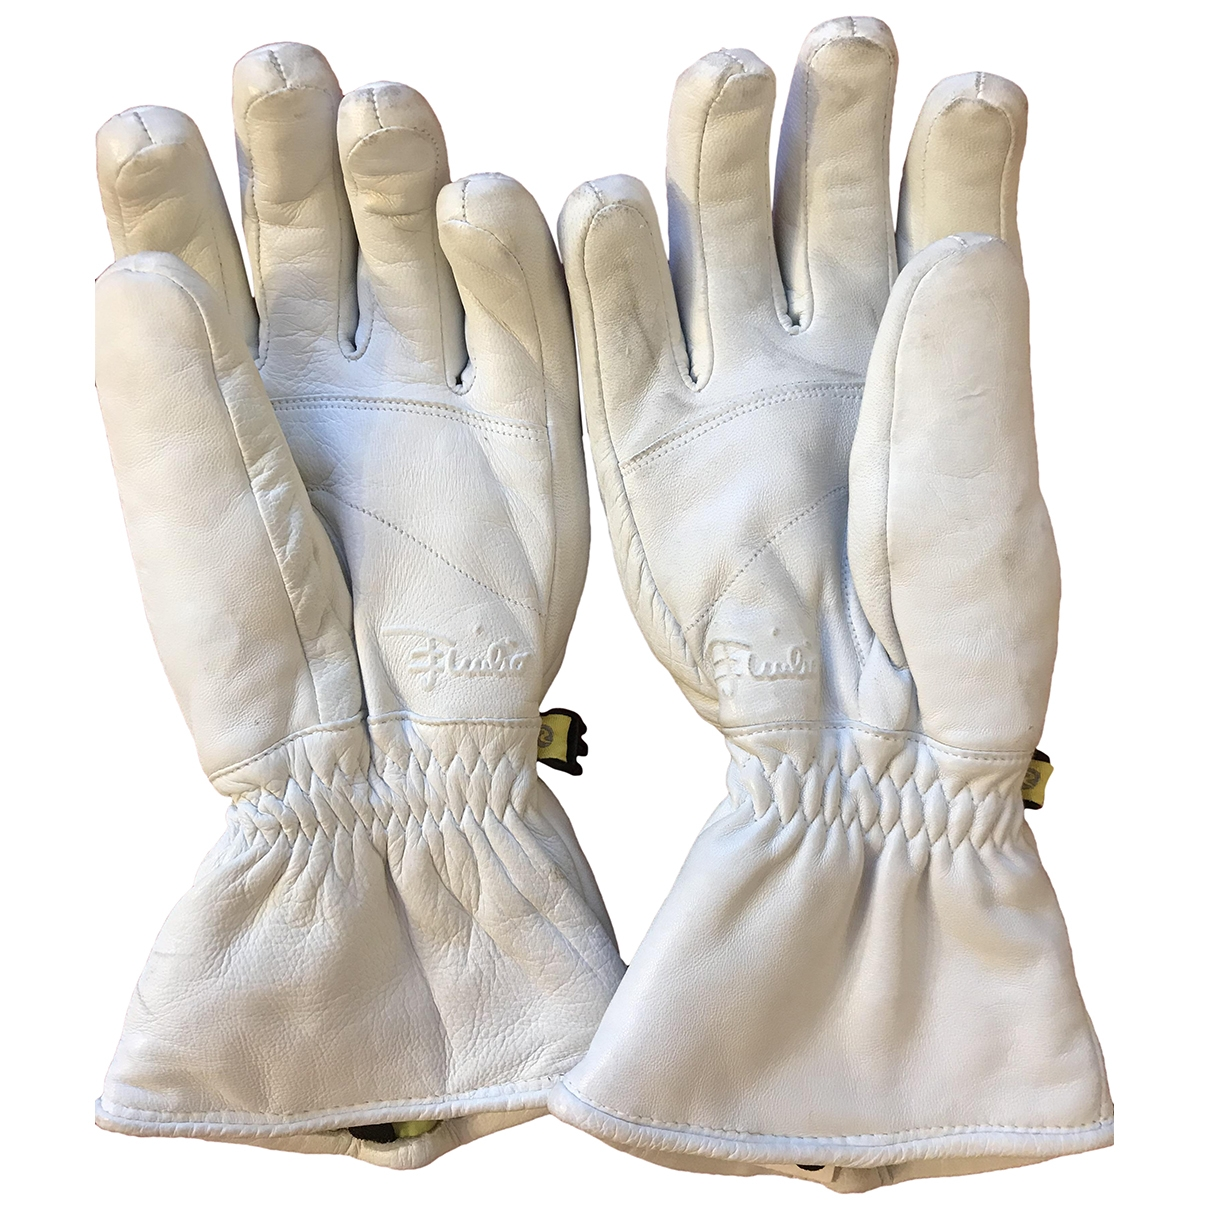 Emilio Pucci \N White Leather Gloves for Women S International